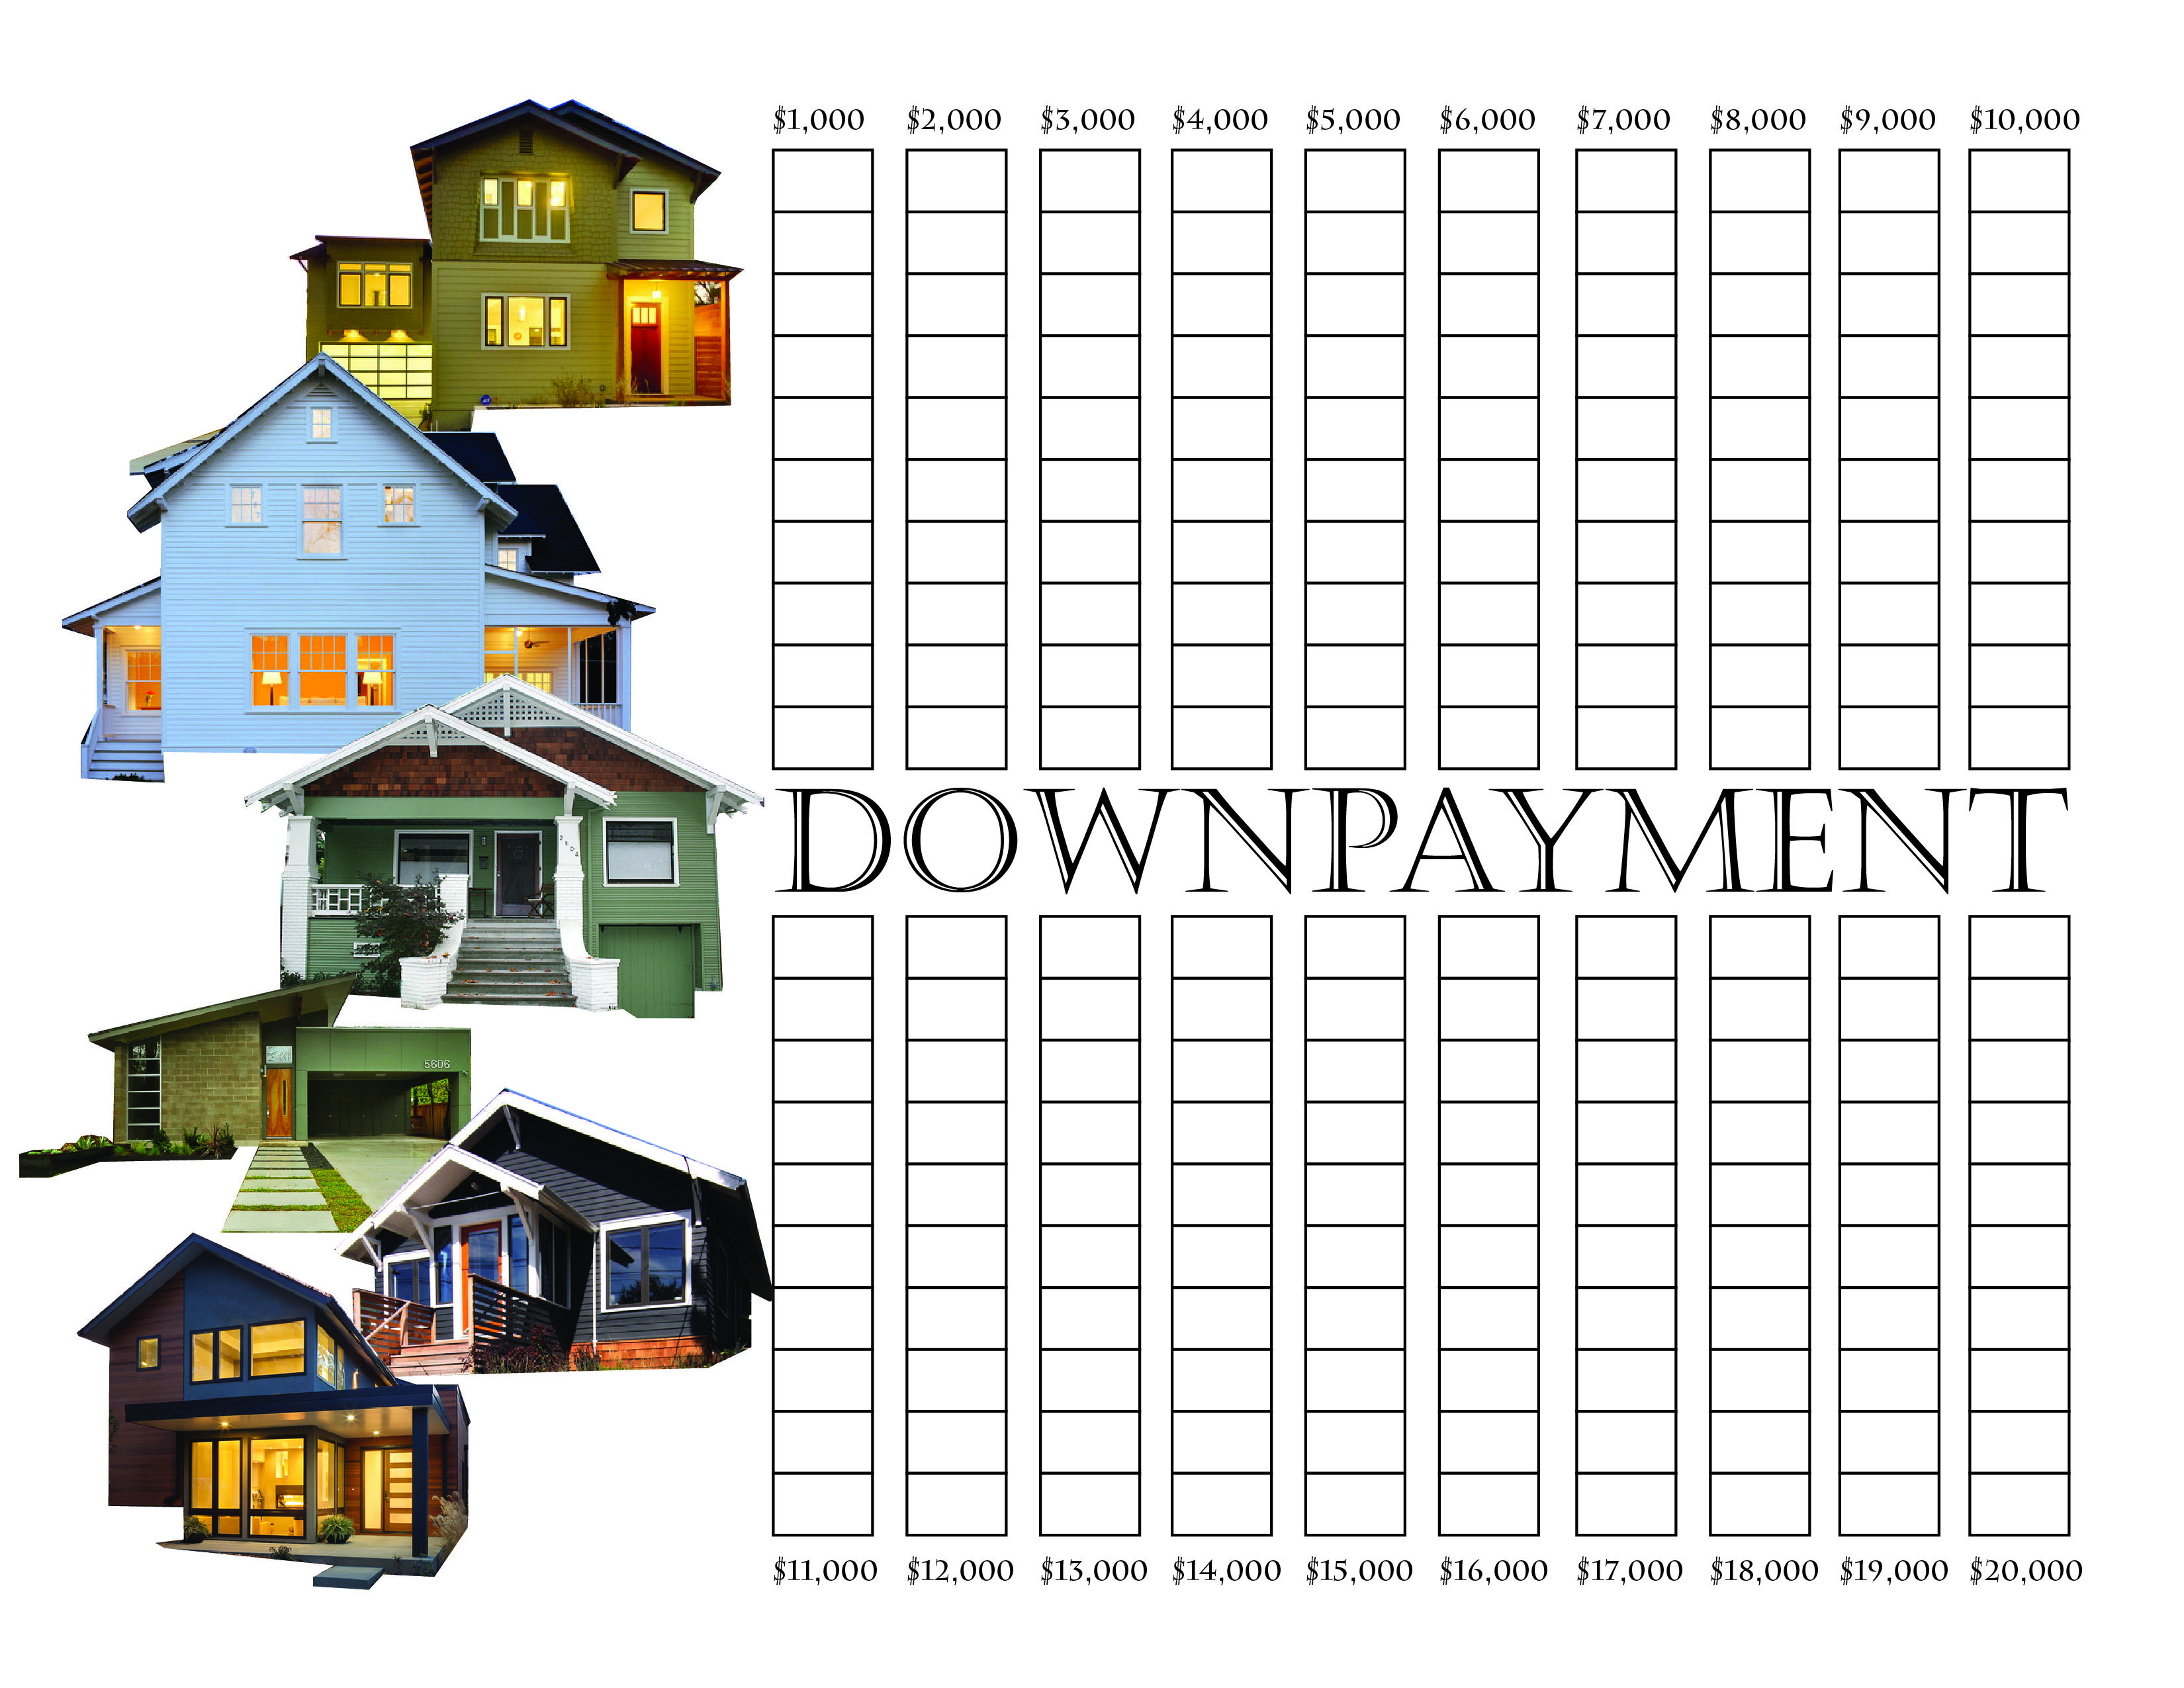 How To Get Down Payment Money For House